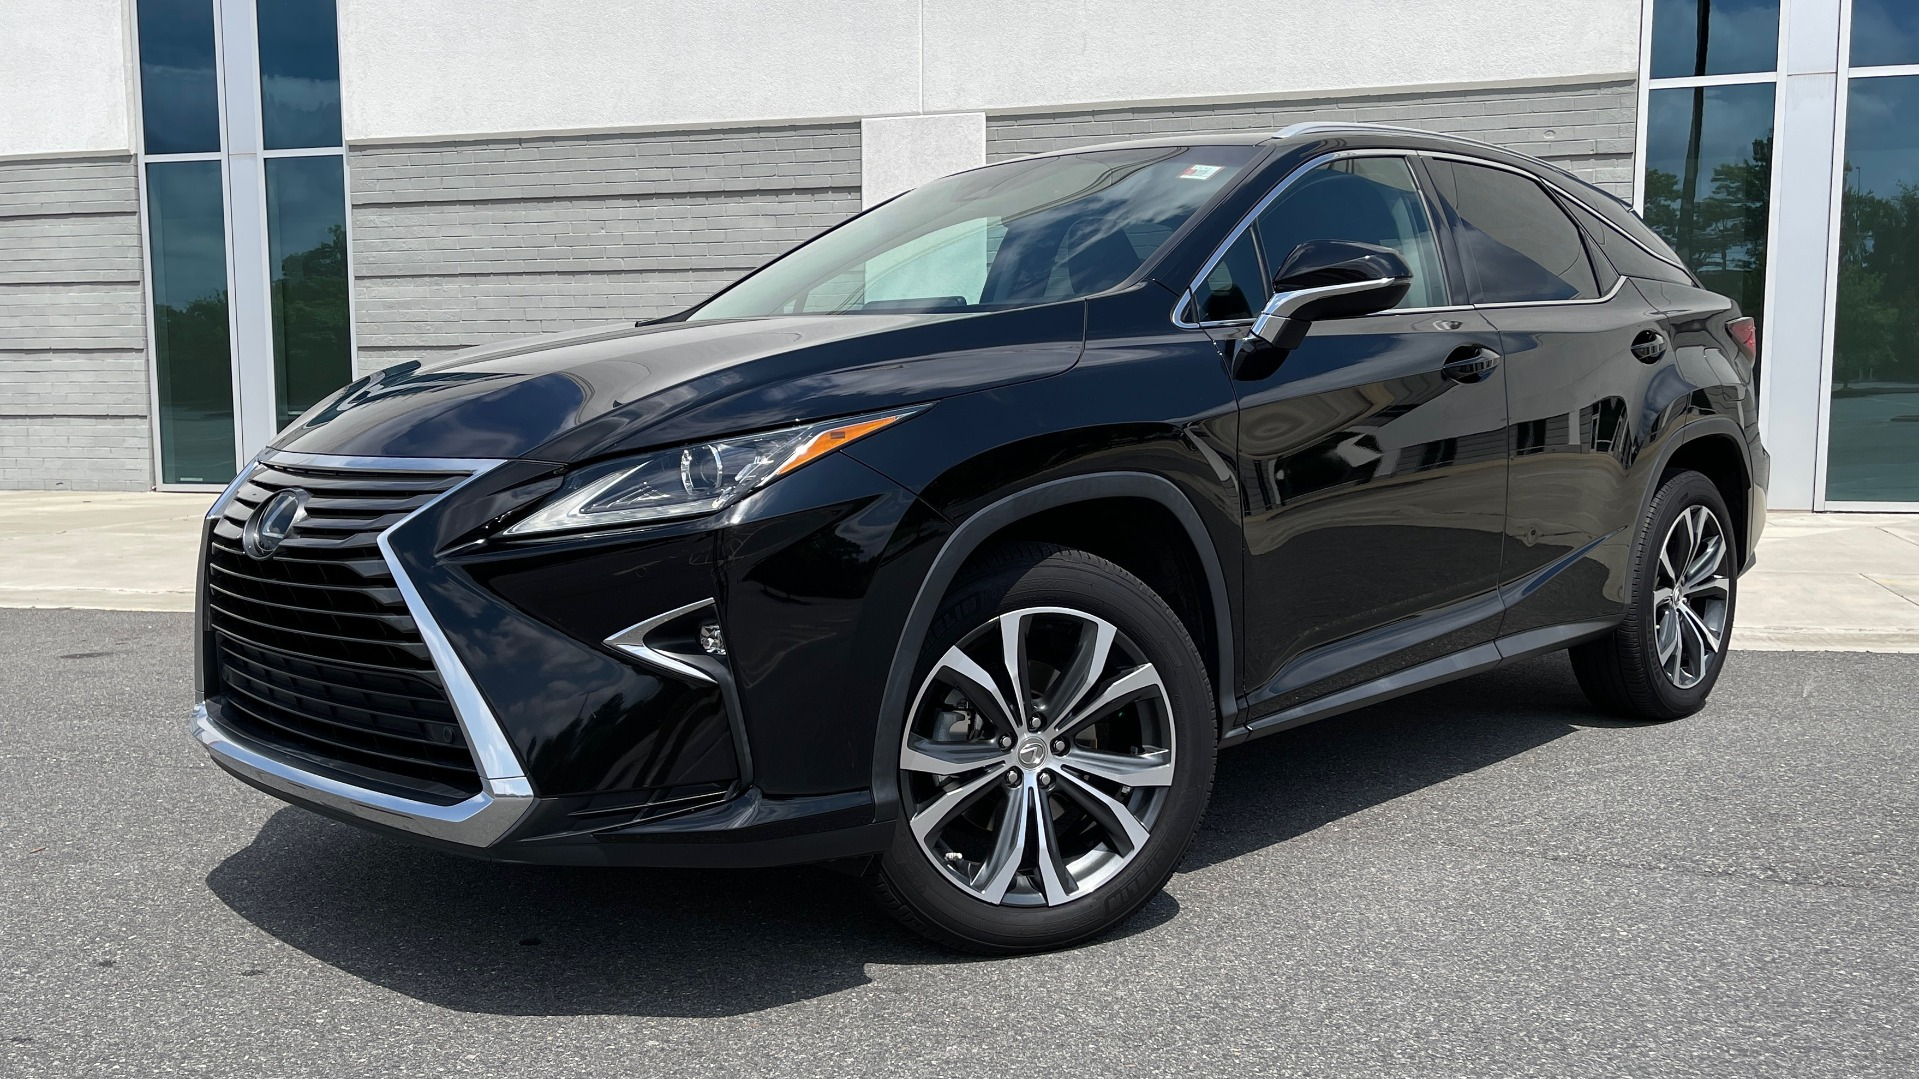 Used 2016 Lexus RX 350 PREMIUM / NAV / SUNROOF / BSM / PARK ASST / REARVIEW for sale $29,495 at Formula Imports in Charlotte NC 28227 1